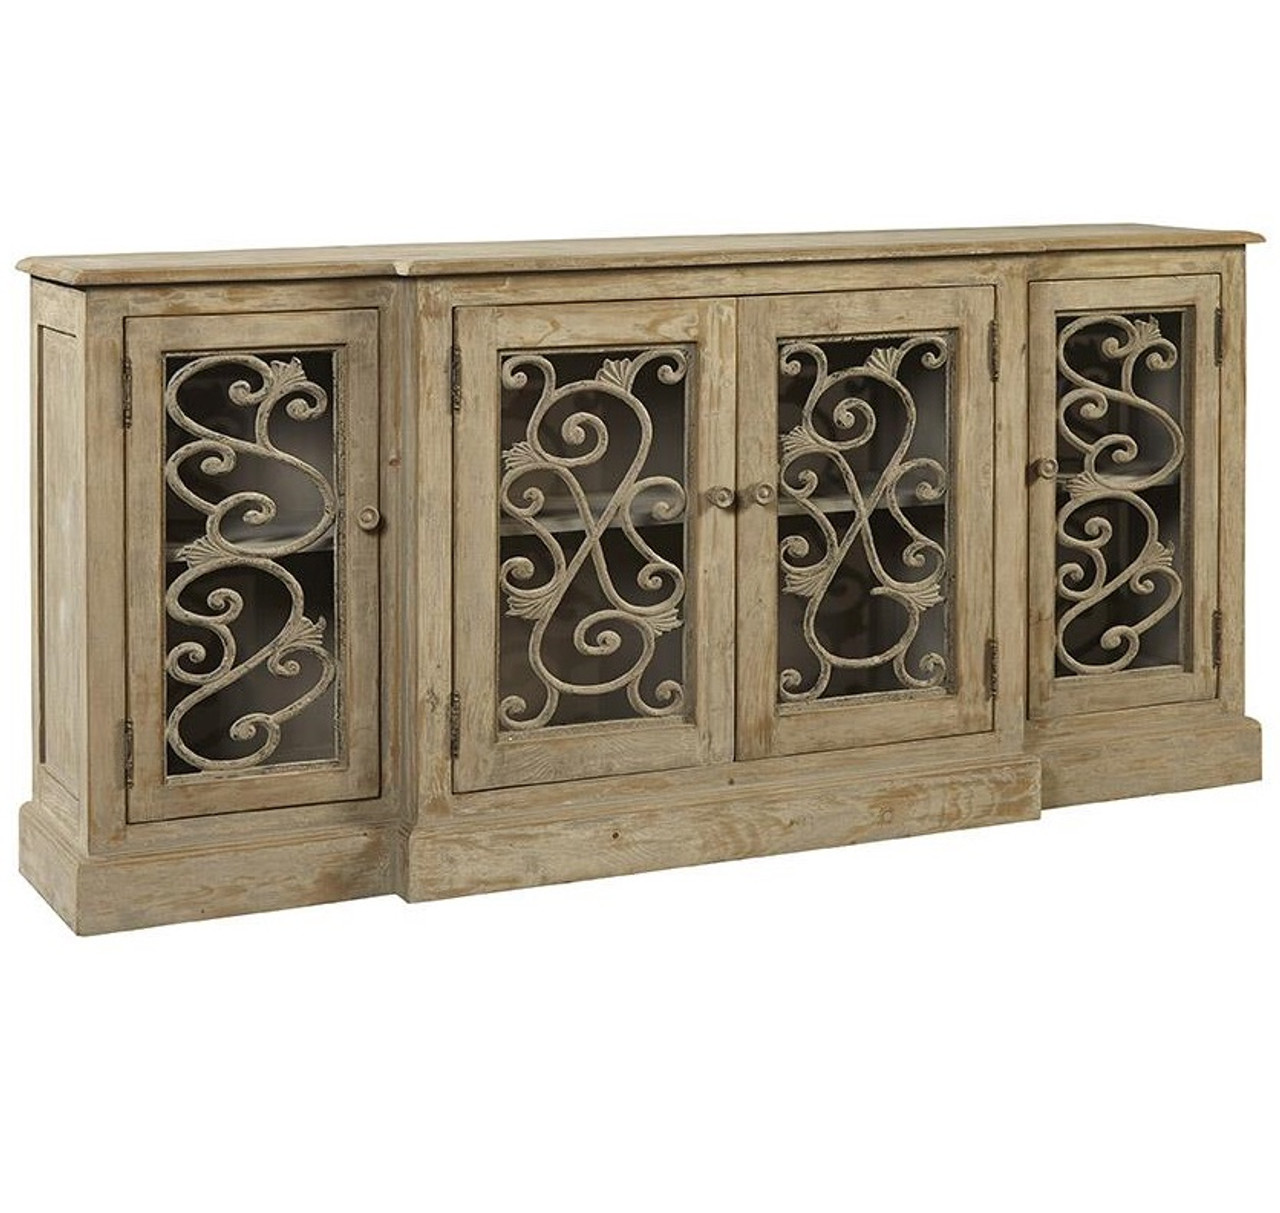 Picture of: Chateau Chinon Rustic Grey Vintage Sideboard Buffet Zin Home